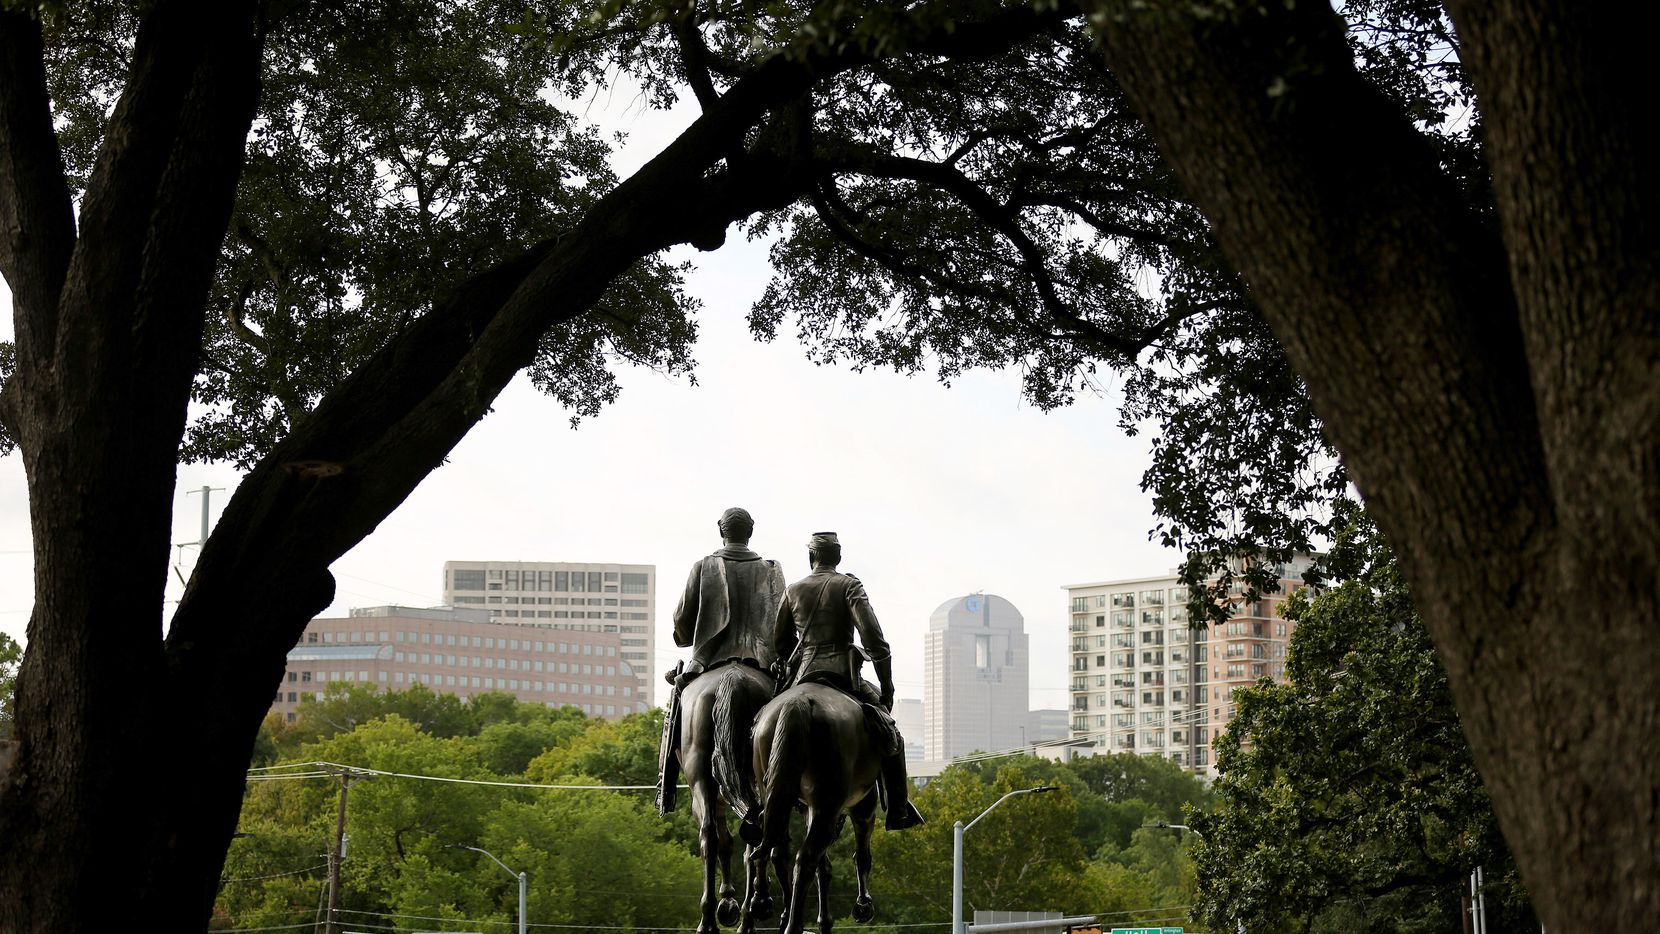 A view of the statue of Confederate general Robert E. Lee at Robert E. Lee Park in the Oak Lawn neighborhood of Dallas Wednesday, August 16, 2017. Andy Jacobsohn/The Dallas Morning News)